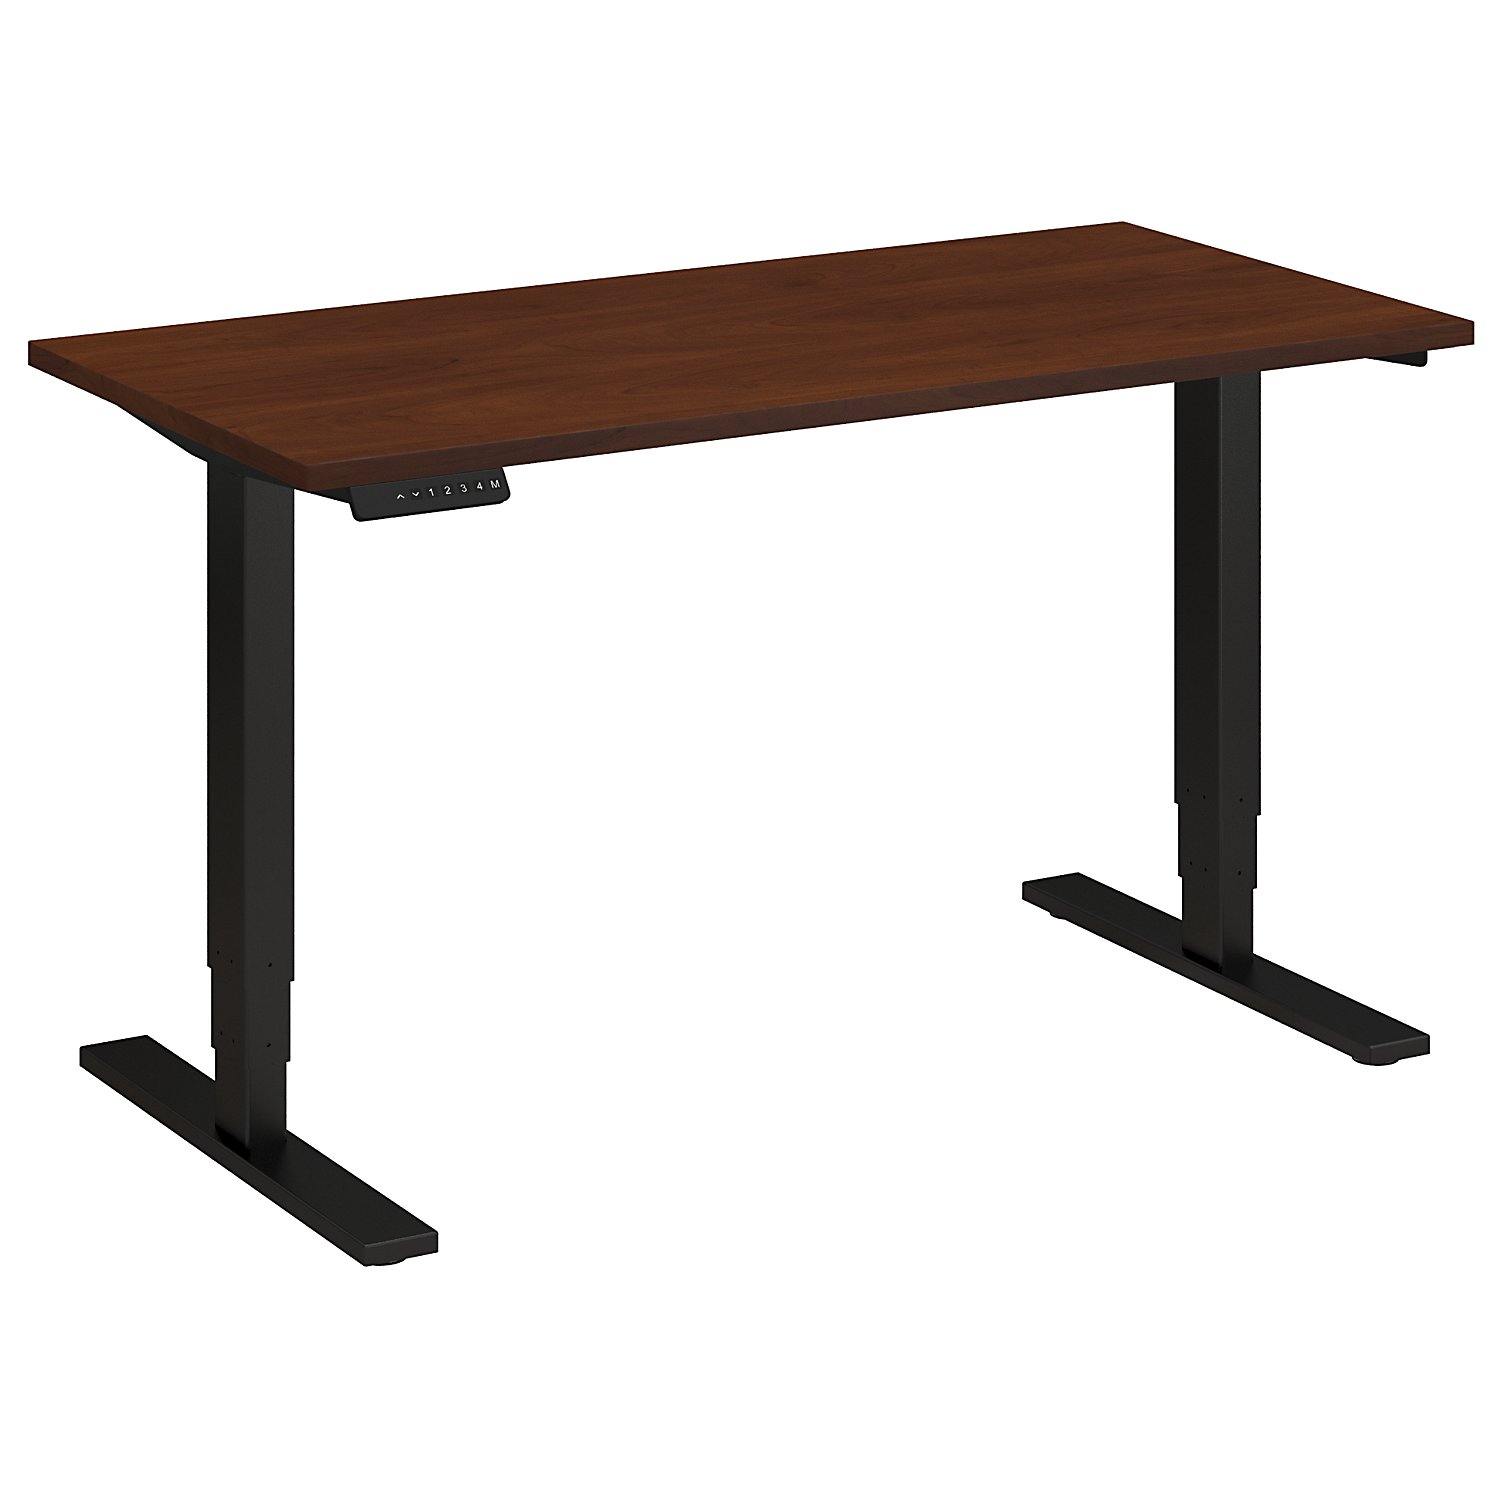 Adjustable Height Desks from BBF - Shown in Hansen Cherry woodgrain laminate top and black base